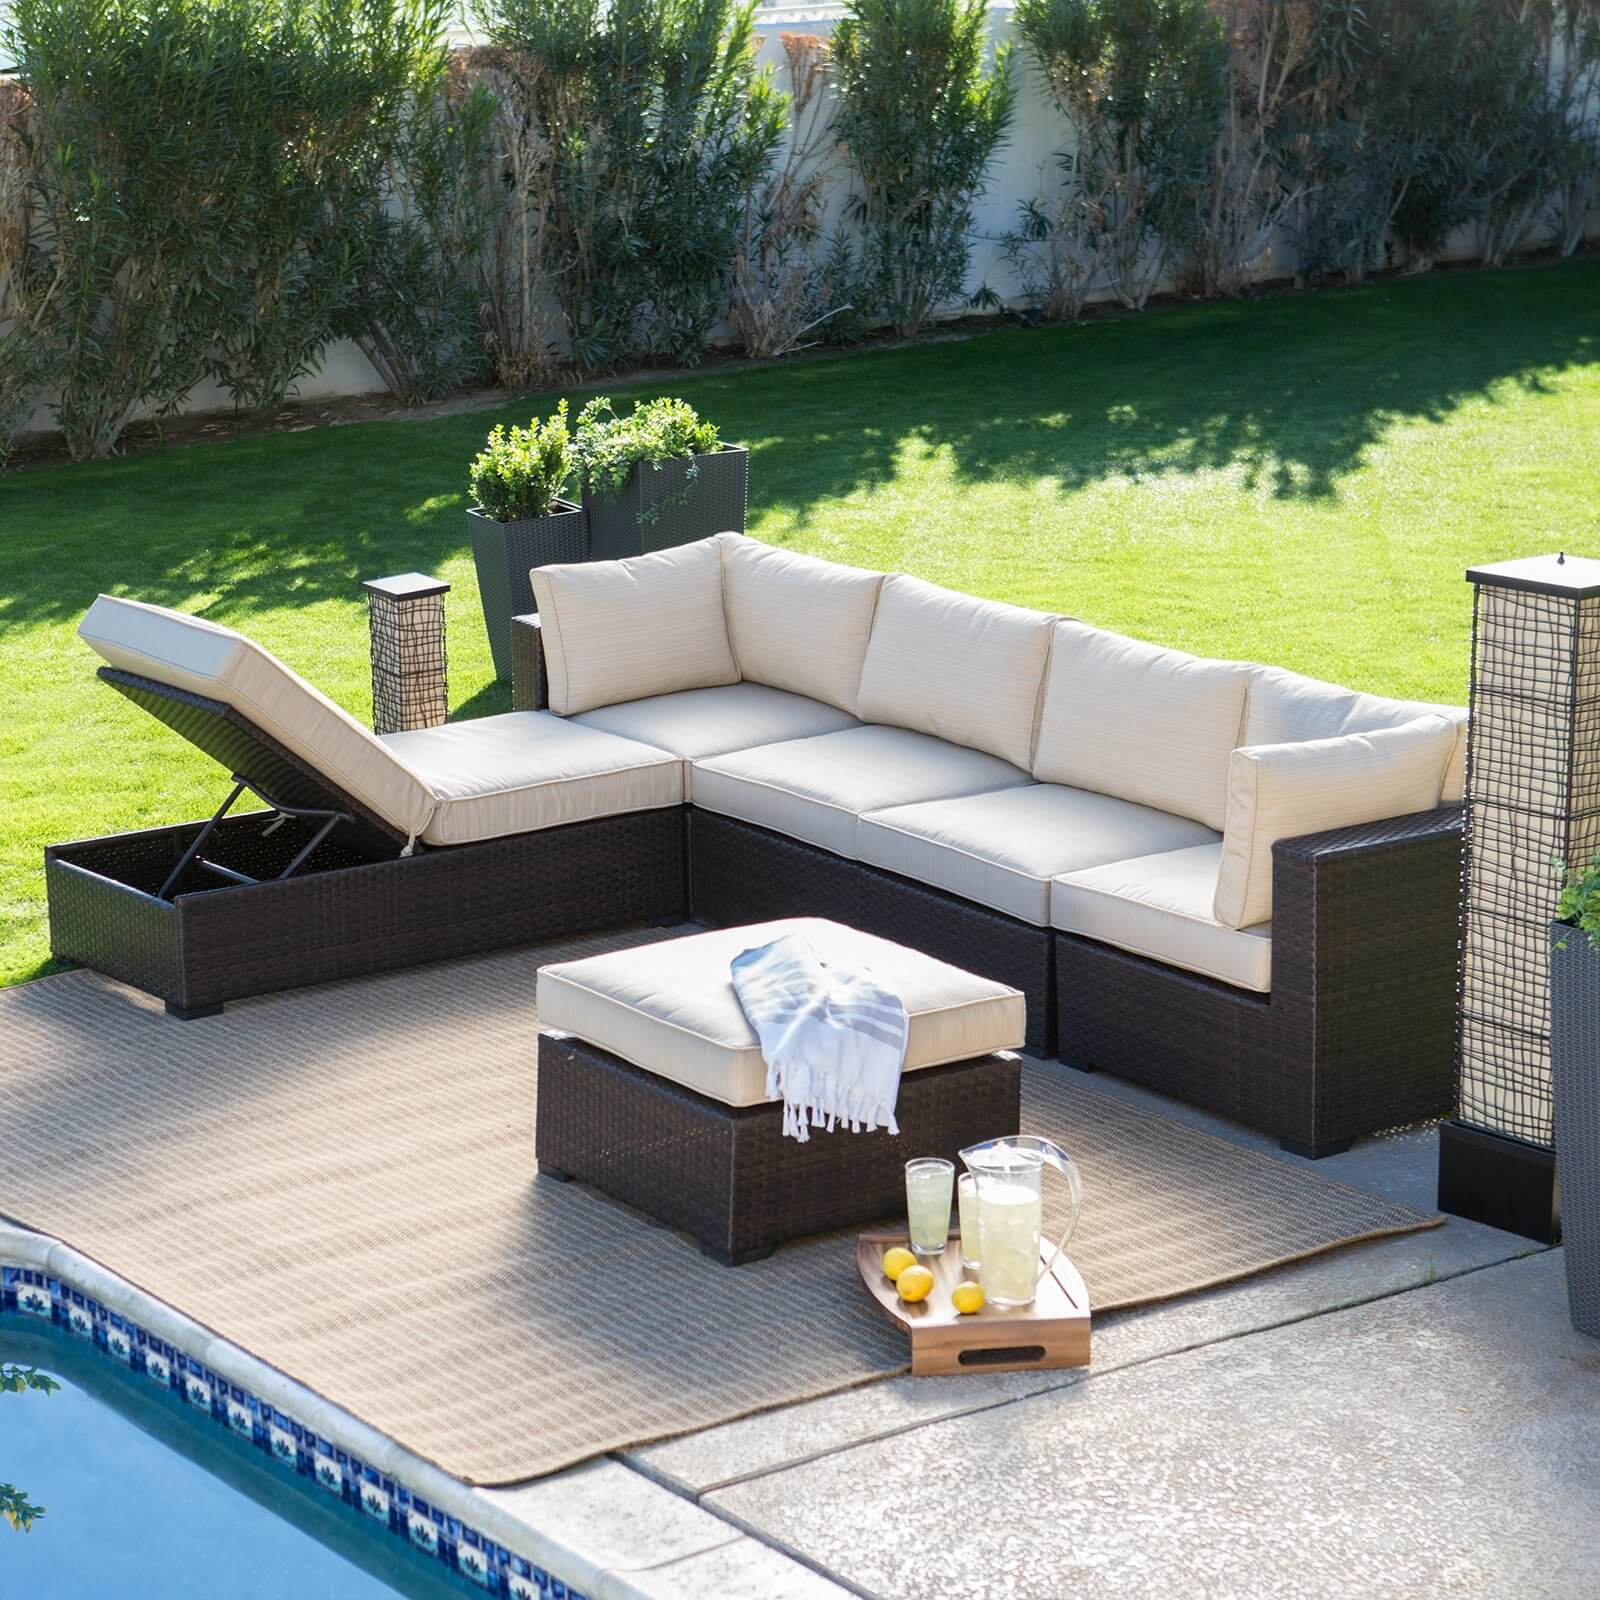 chairs patio in sale furniture outdoor costco reviews with a lounge sofa wicker sectional prepare sets purple white